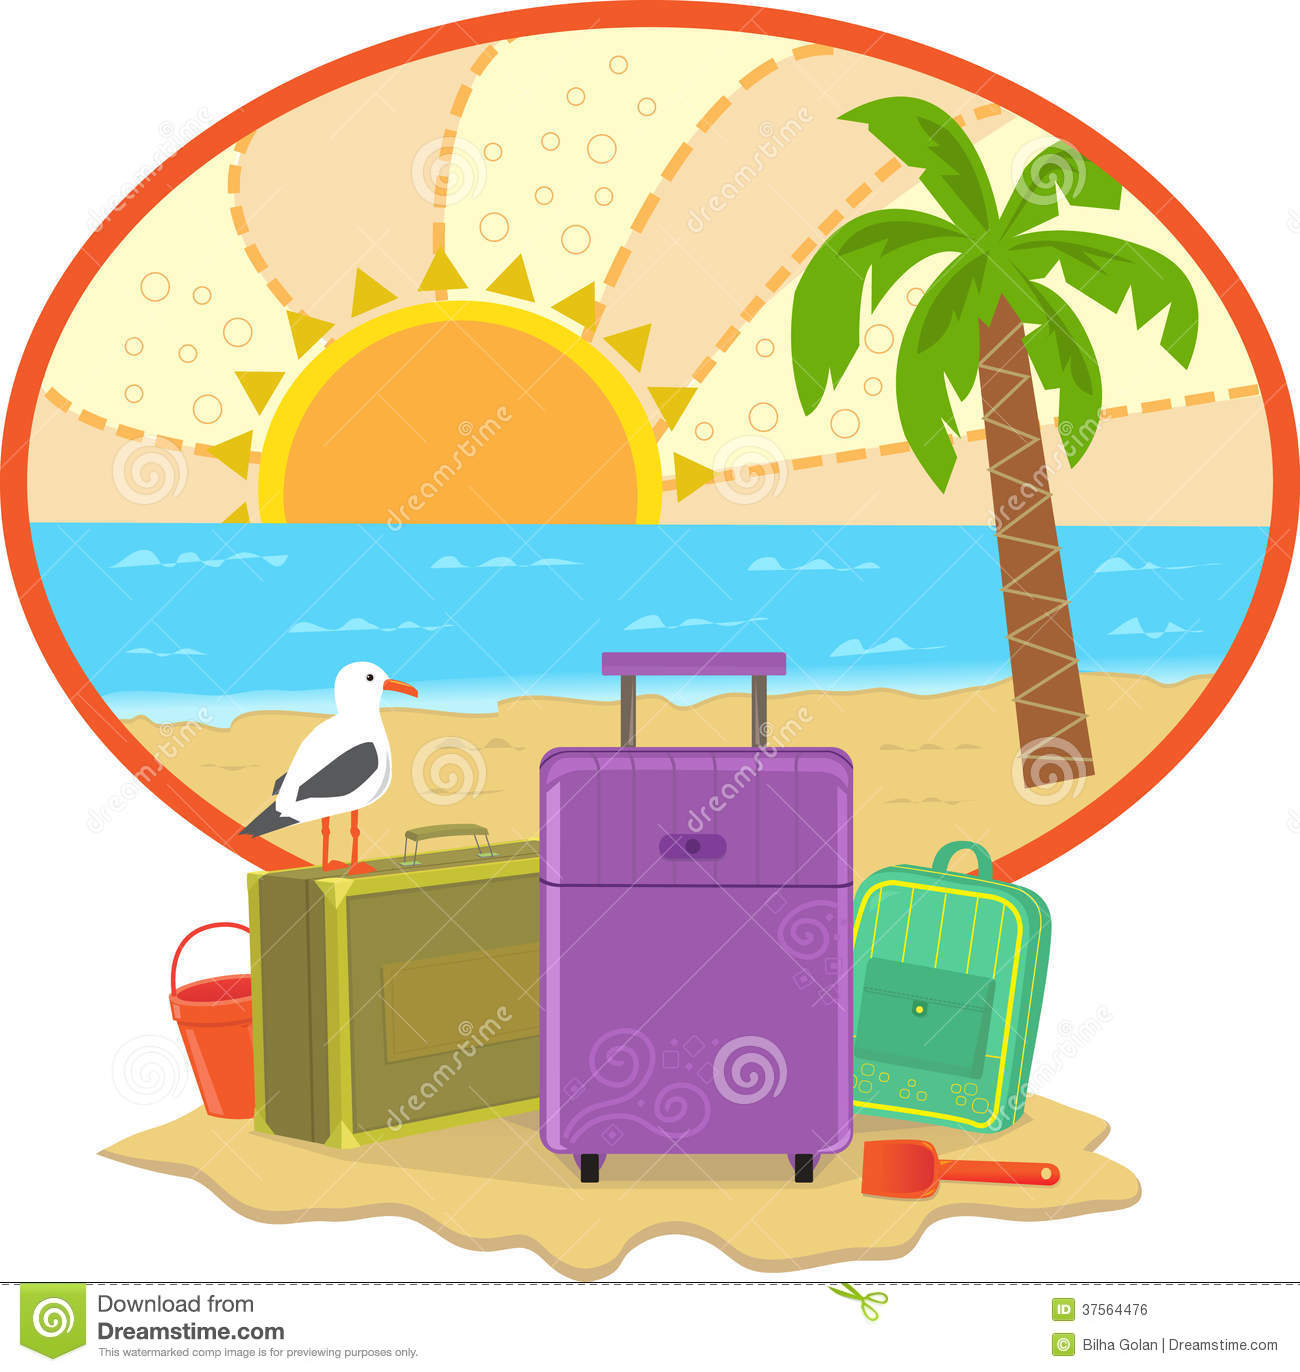 Cute illustration of suitcases and a beach in the background. Eps10.